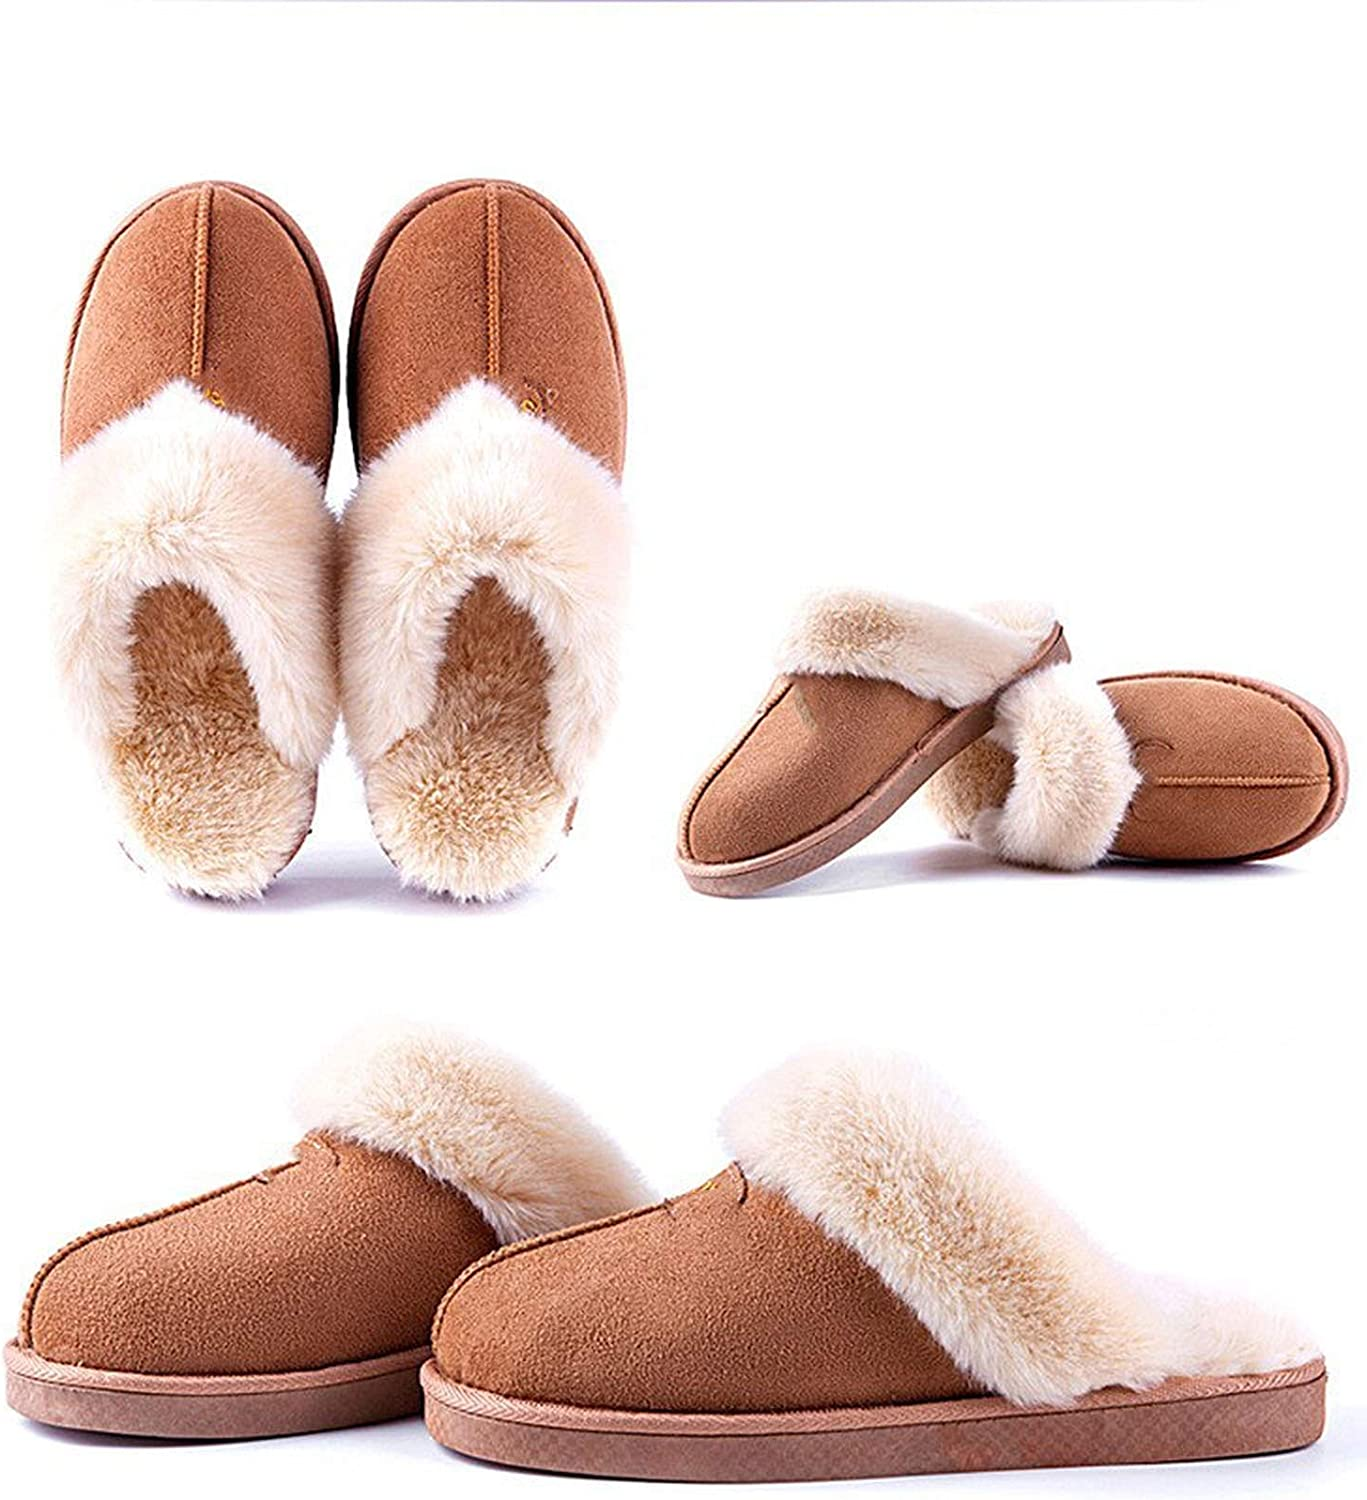 Can't be satisfied Women Winter Home Slippers Faux Suede Non-Slip Soft Warm House Slippers Indoor Bedroom Couples,Coffee,39